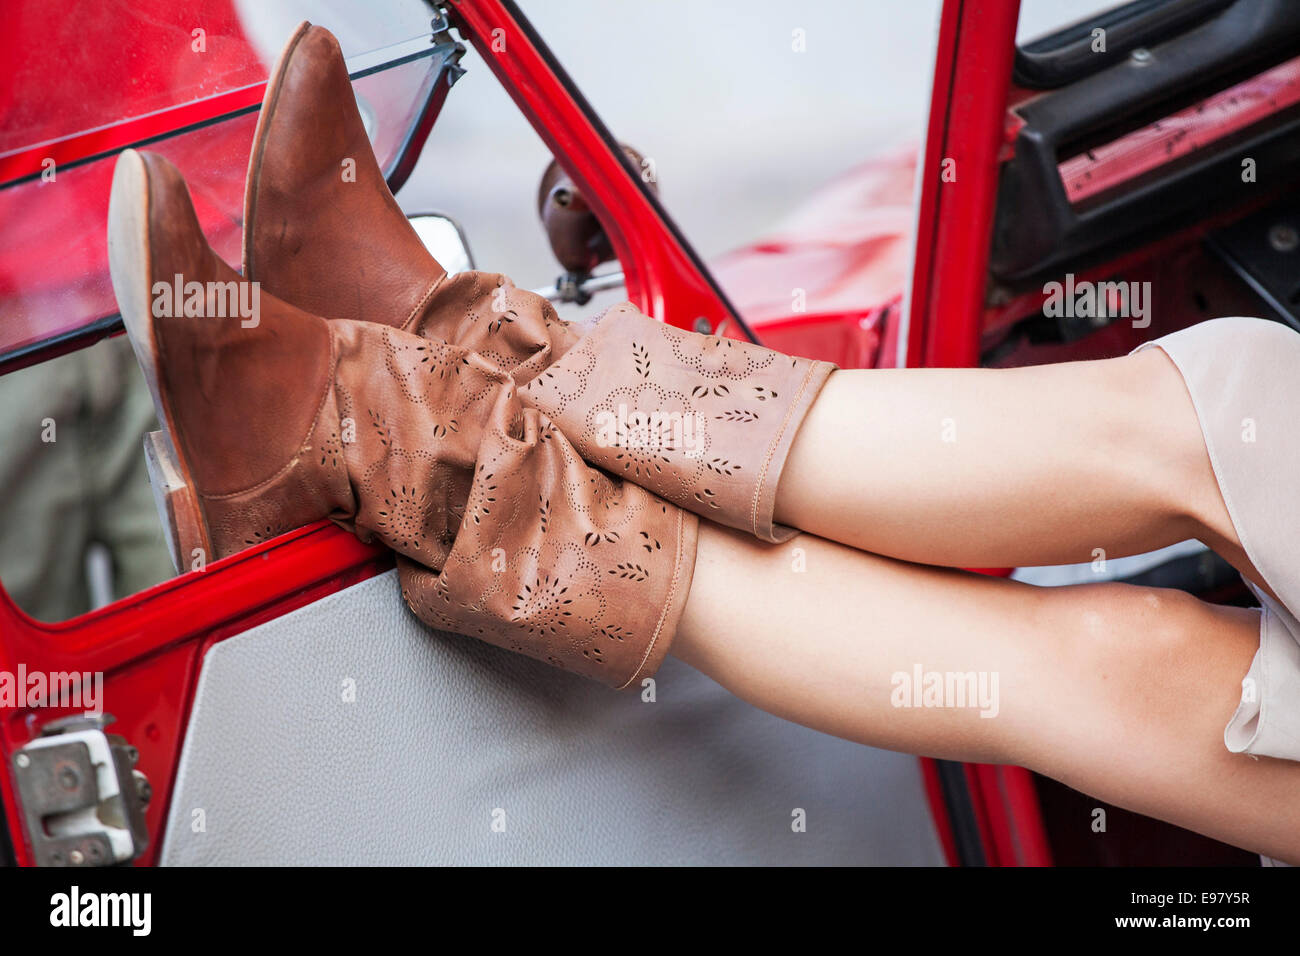 Young woman in leather boots relaxing in car - Stock Image